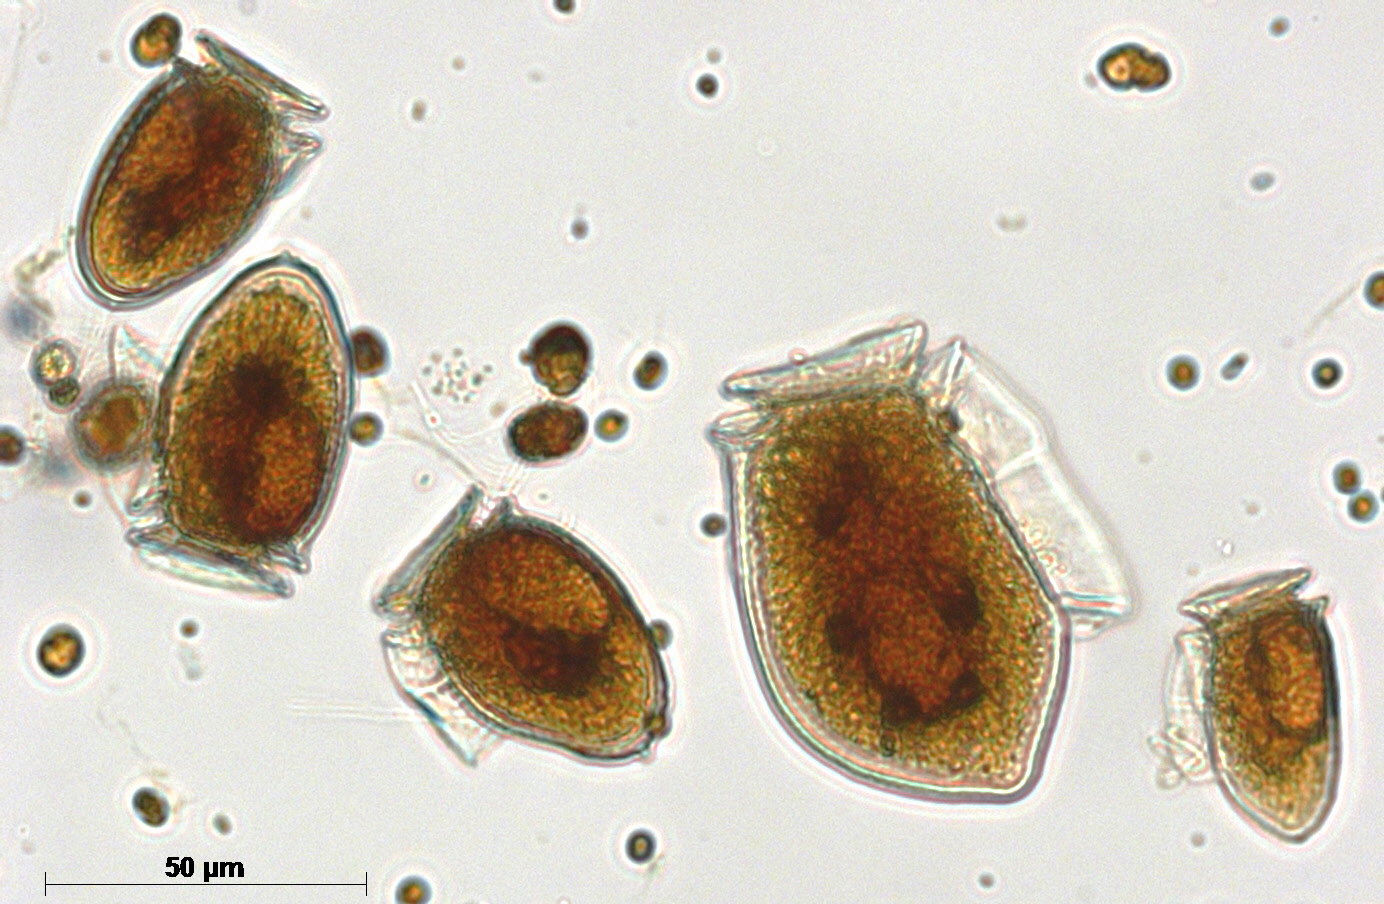 Figure c. Mixed species of Dinophysis © Scottish Association for Marine Science